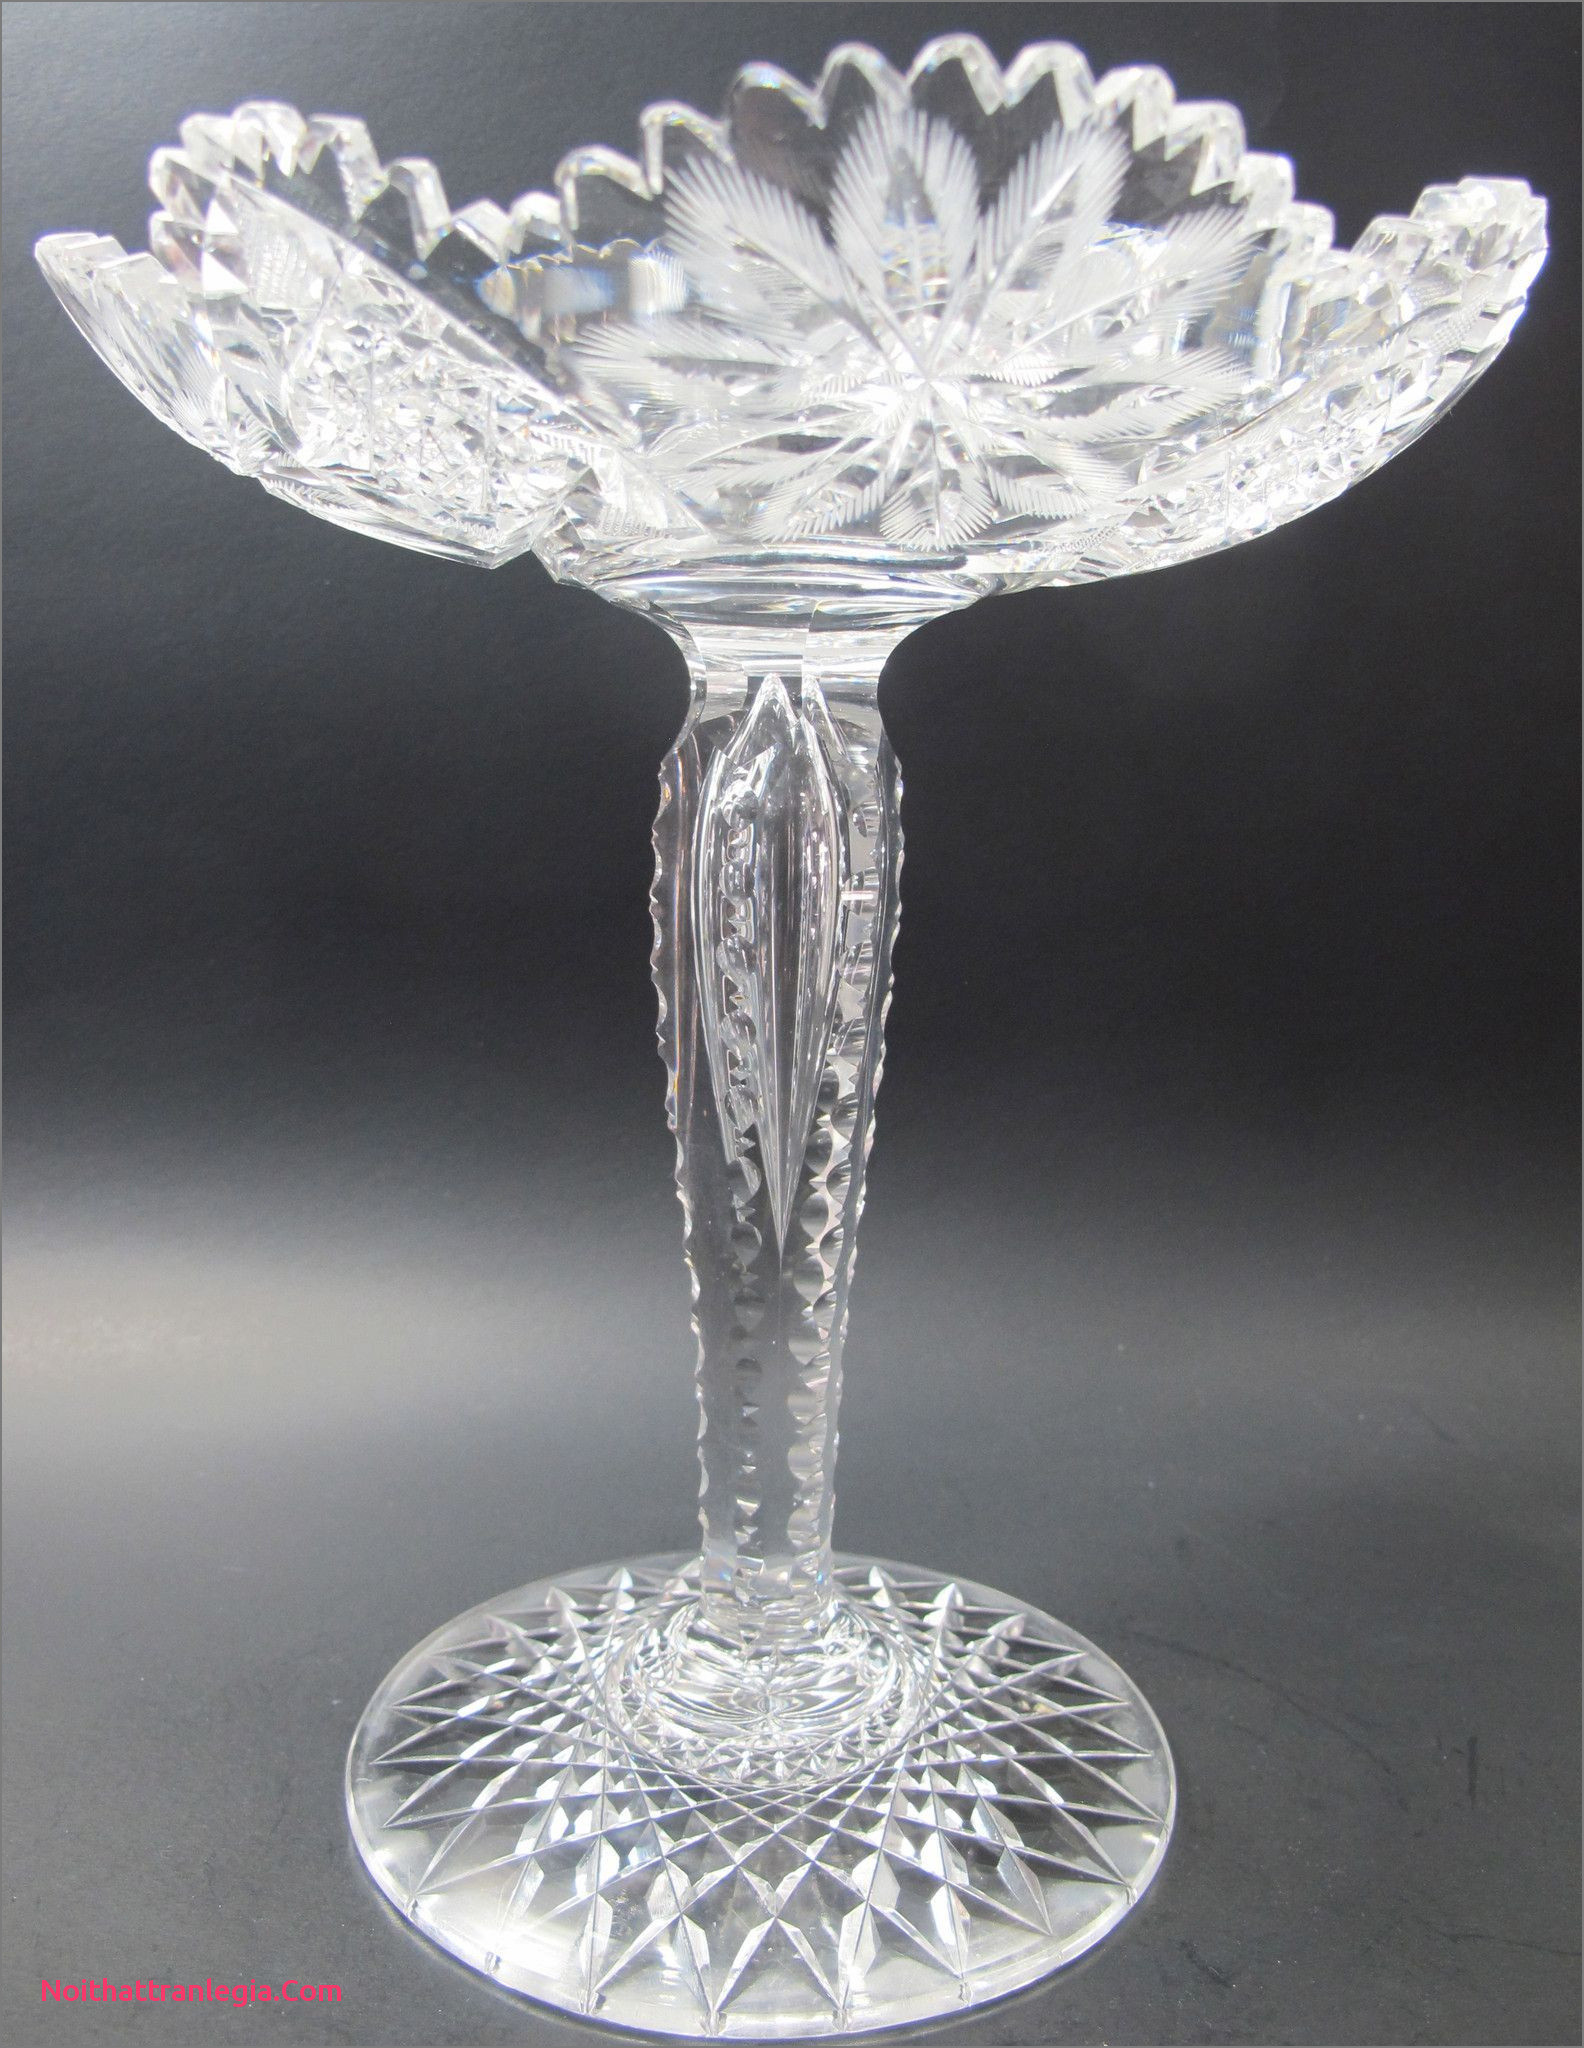 silver bowl vase of 20 cut glass antique vase noithattranlegia vases design inside fering this abp antique cut glass pote from the american brilliant period 1886 1916 9 5